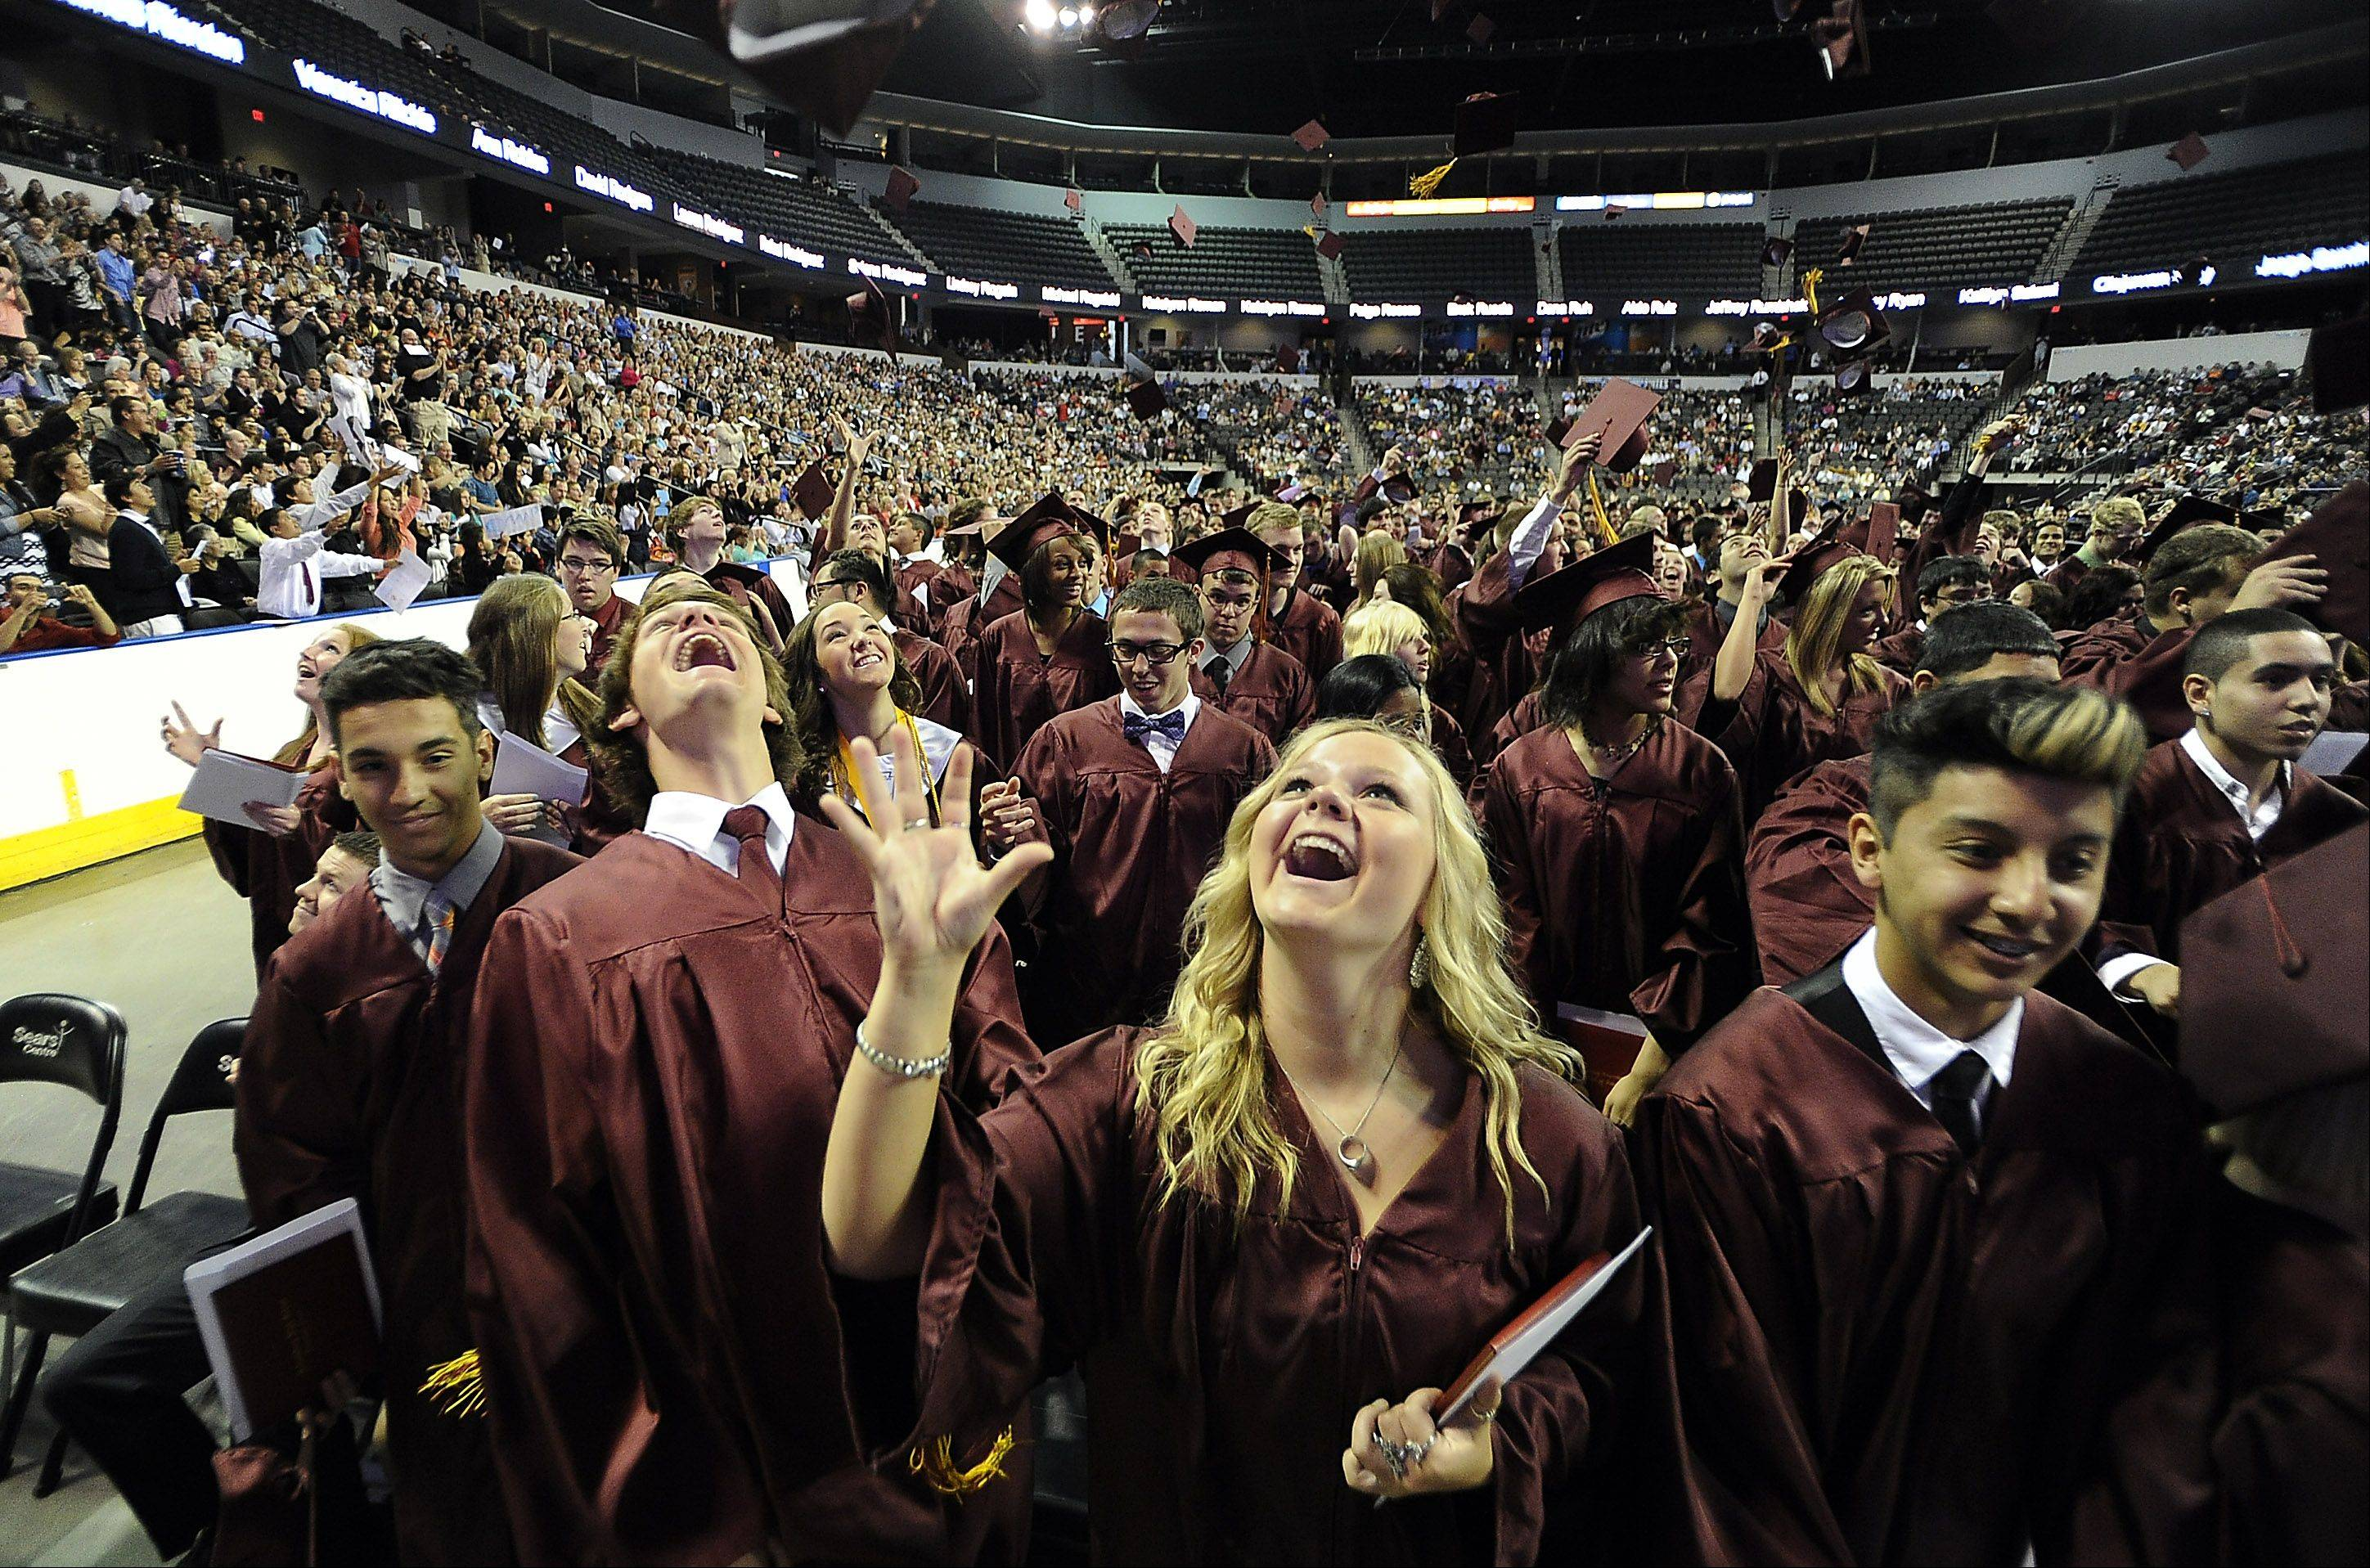 Cameron Mager, 17, and Taisa Madden, 18, both of Schaumburg celebrate their graduation from Schaumburg High School at the Sears Centre in Hoffman Estates on Sunday.